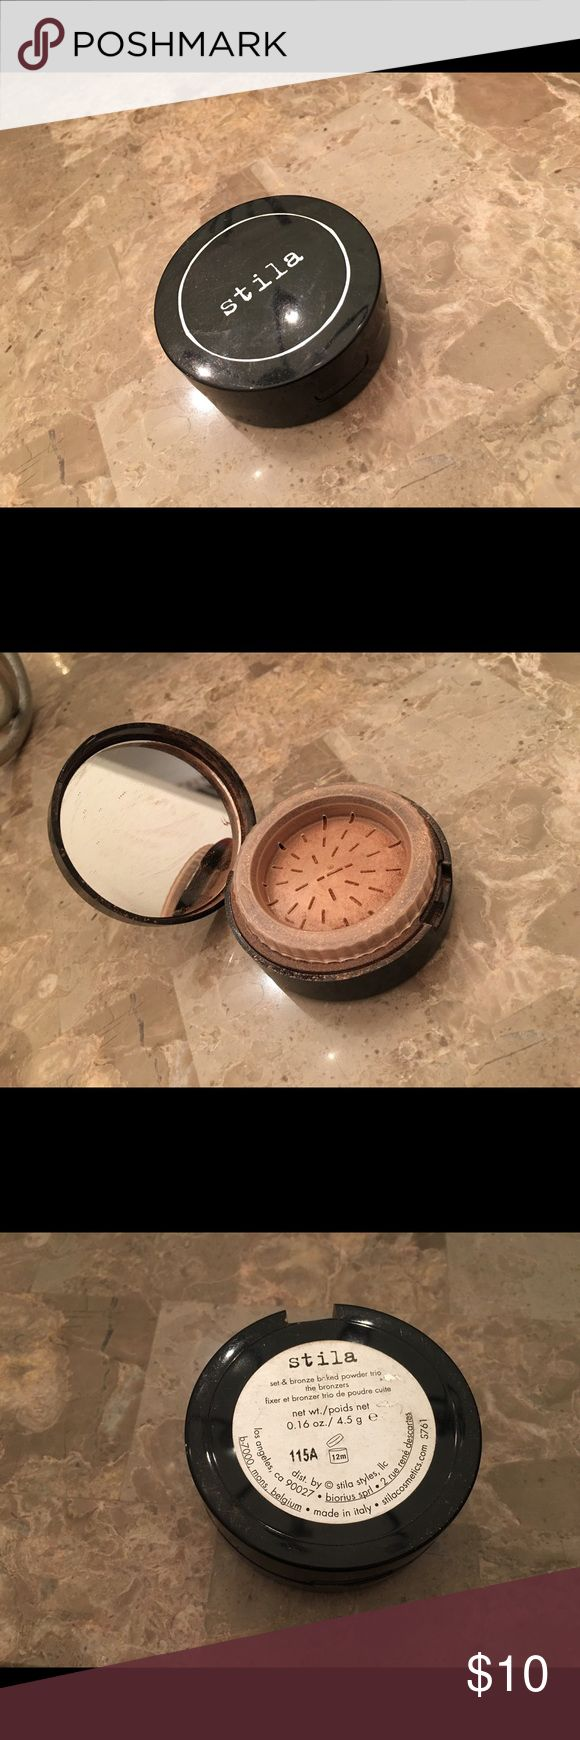 Stila Set and Bronze Baked Powder Trio Almost new, used a few times. Sanitized before shipment, set and bronze baked trio. Comes in a cool container that shaves down product for great application! Purchase a bundle of five or more and get a free 10$ Urban Outfitters cosmetics case!! 💕 Stila Makeup Bronzer